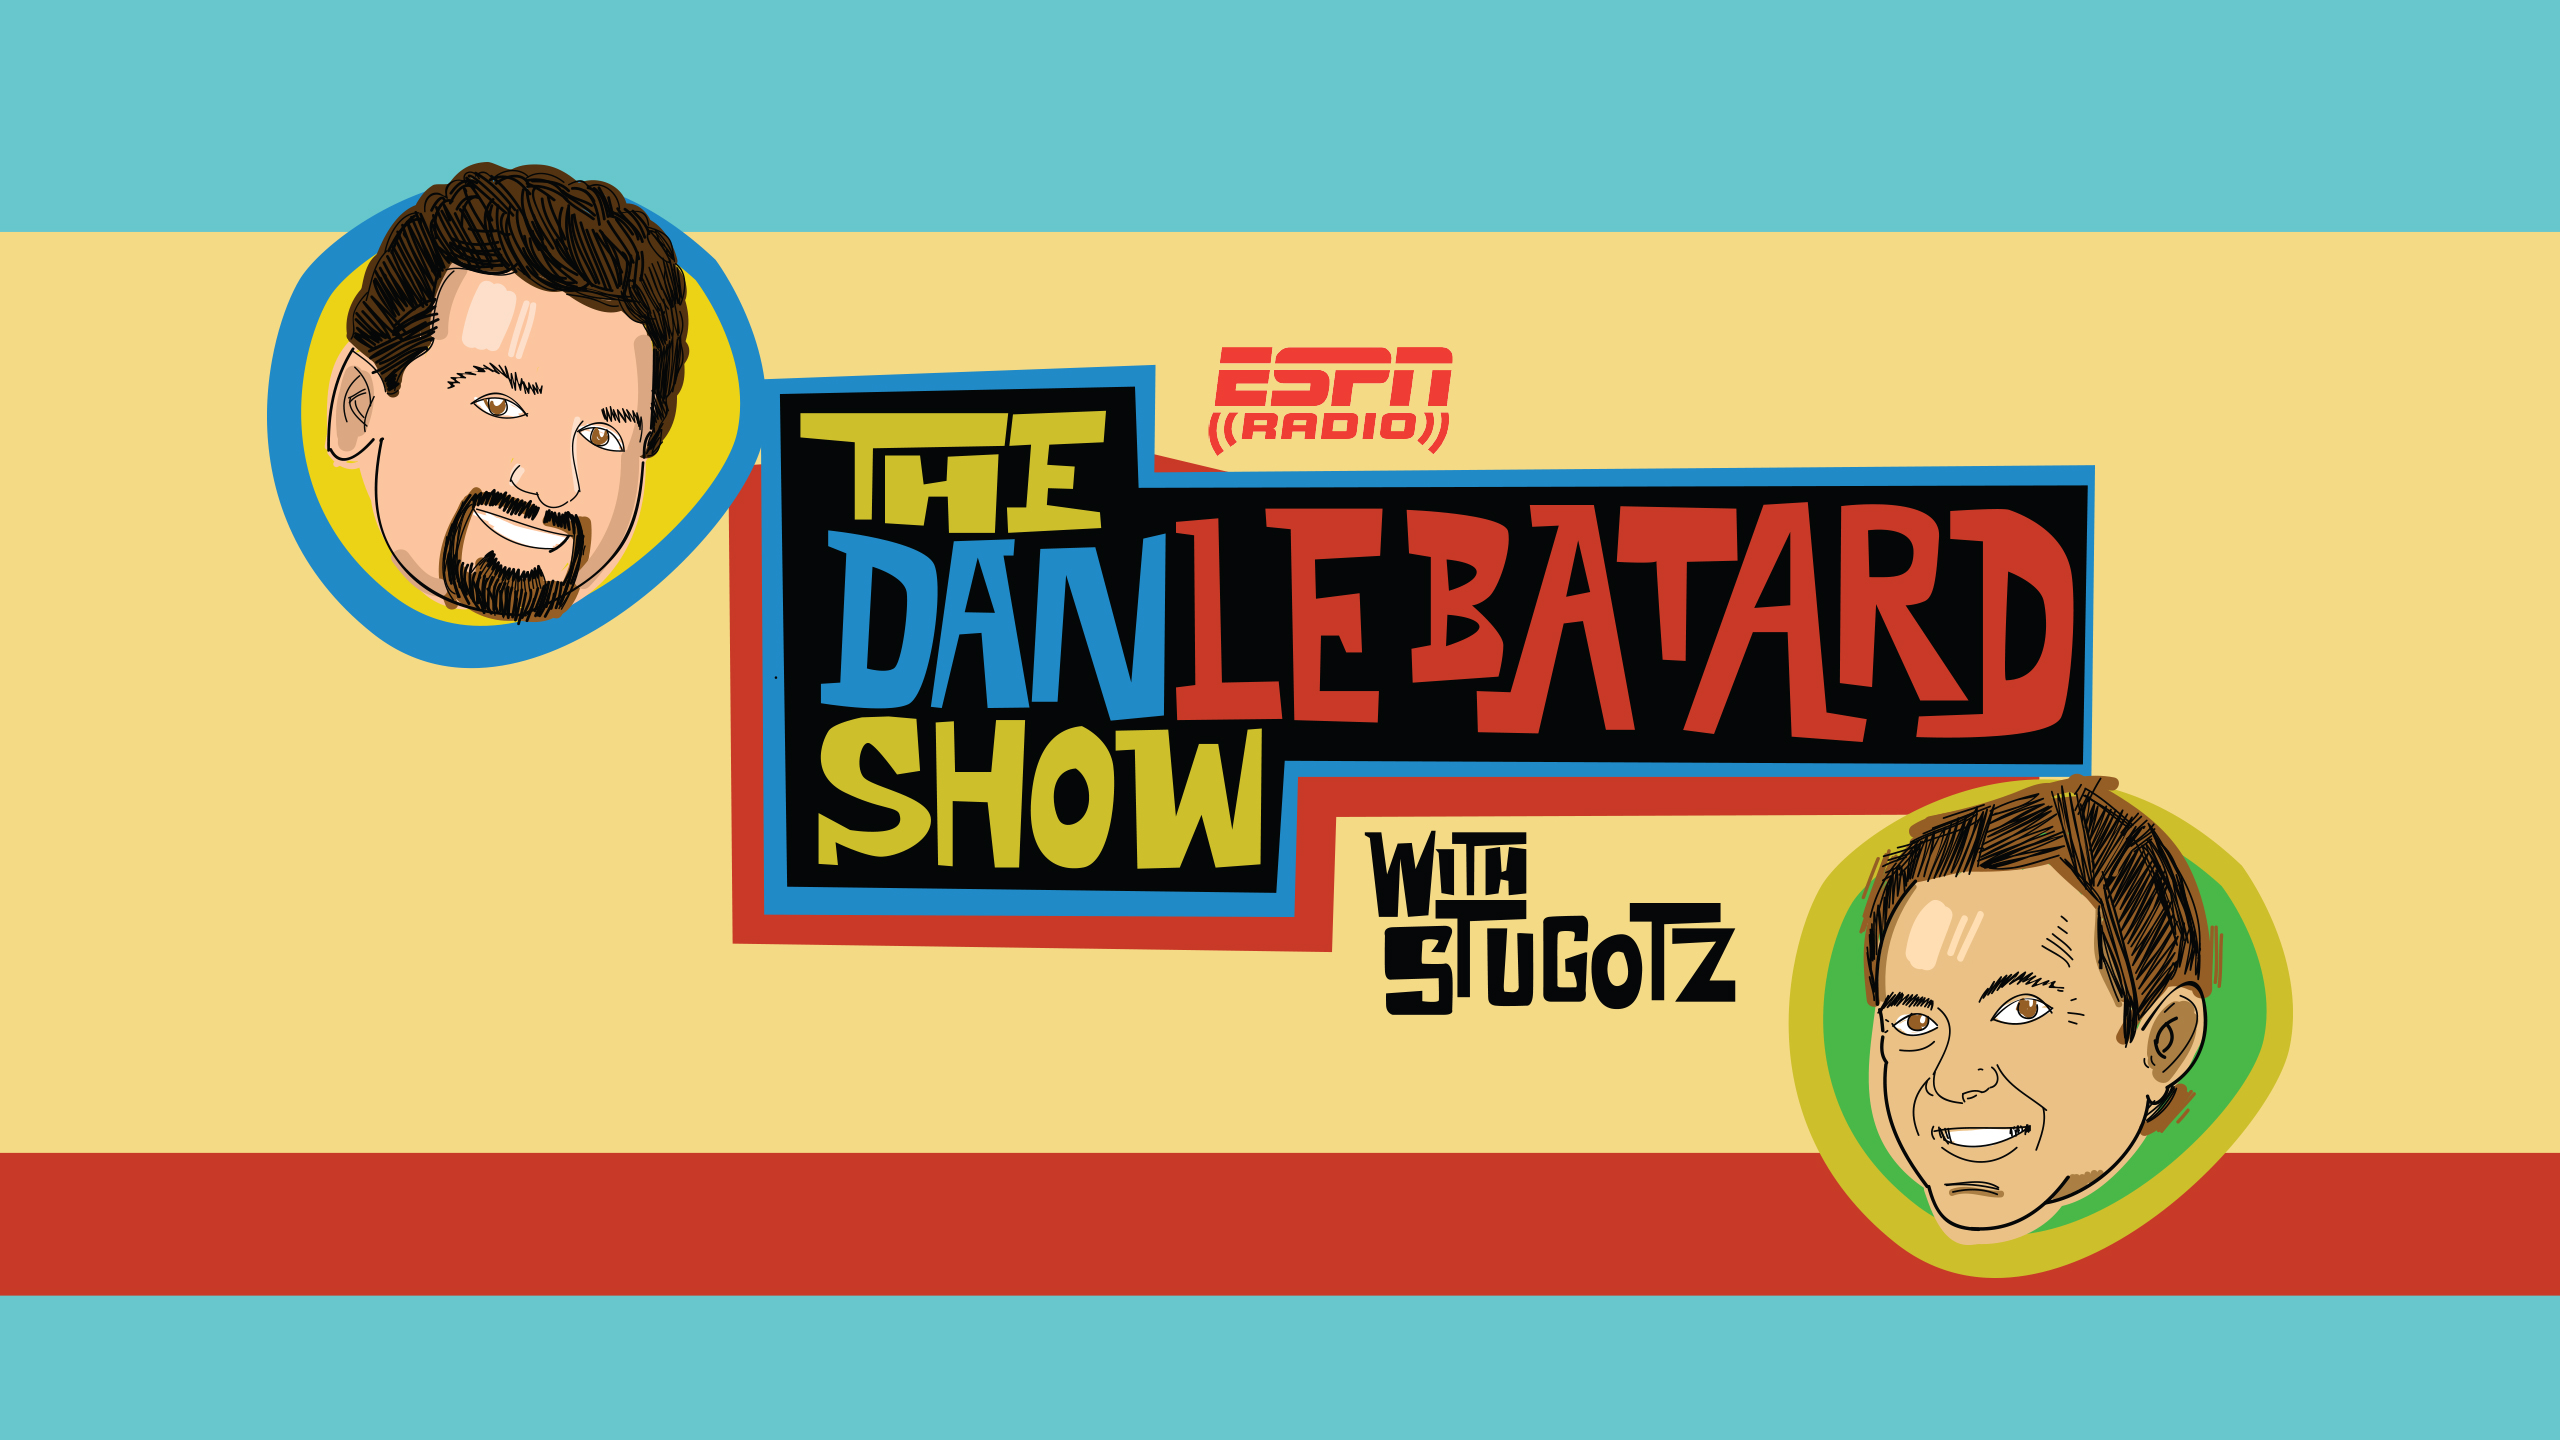 Mon, 9/24 - The Dan Le Batard Show with Stugotz Presented by Progressive